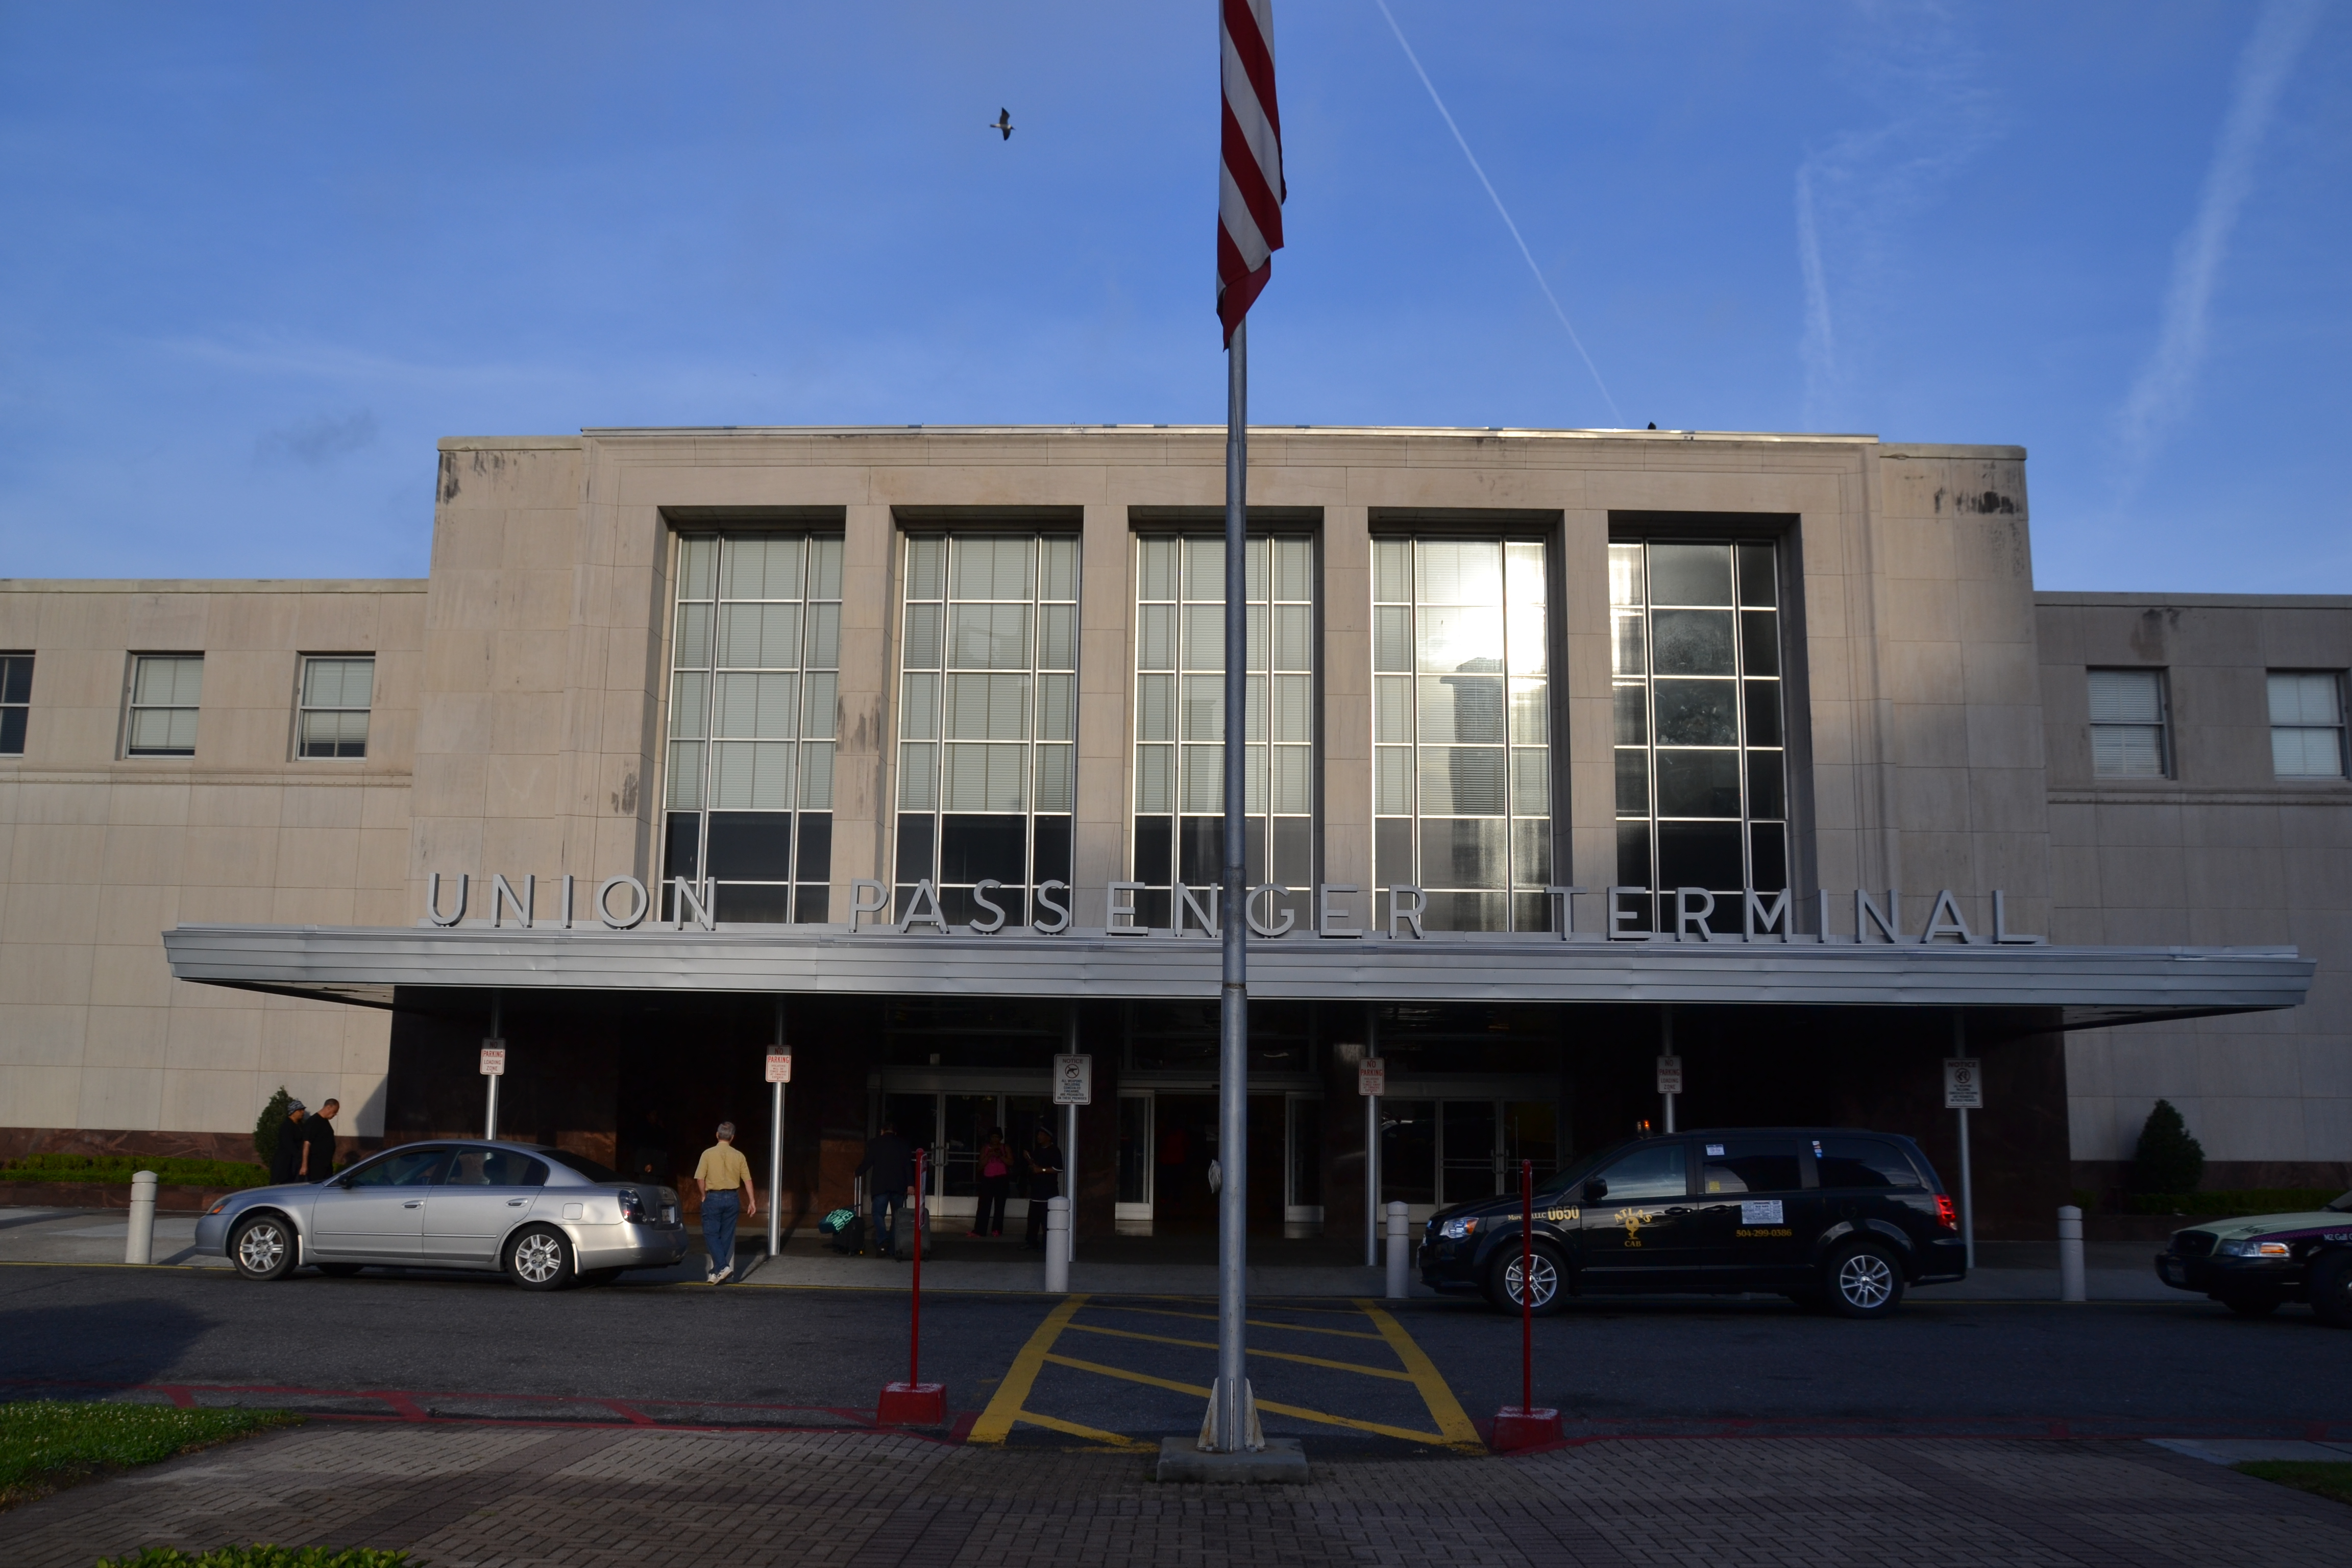 A blocky, circa-1954 train station exterior sits behind an American flag.